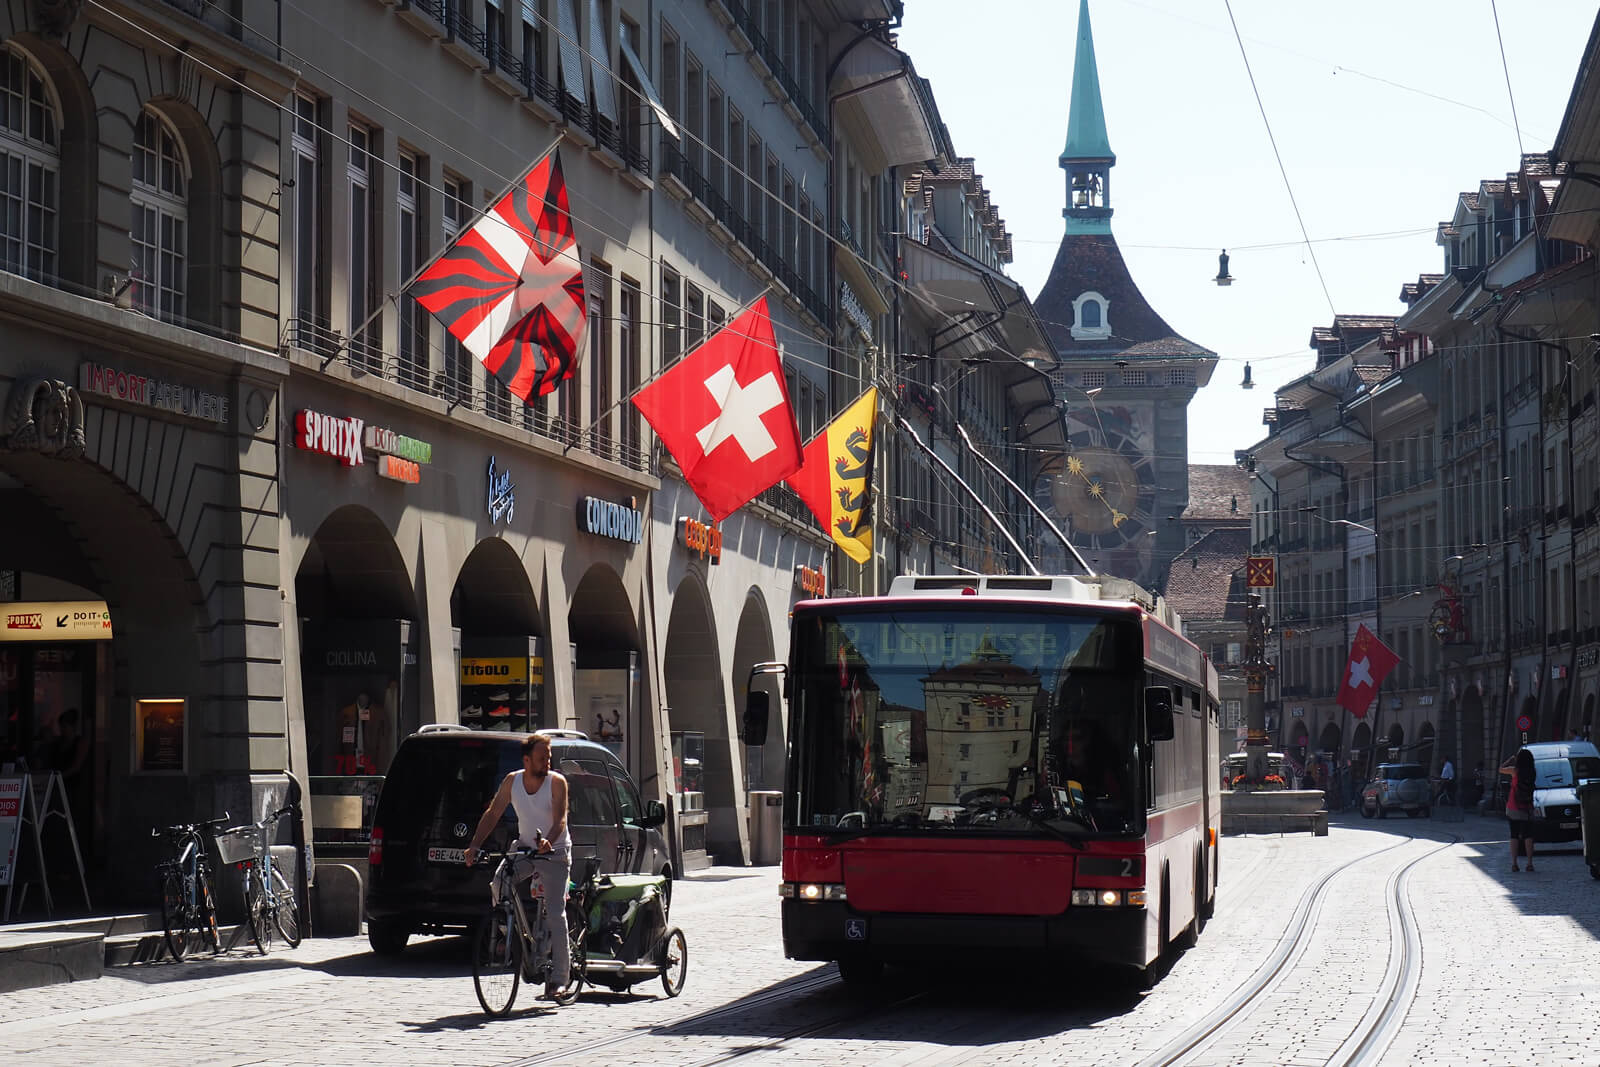 A Swiss flag waving in the Old Town of Bern, Switzerland